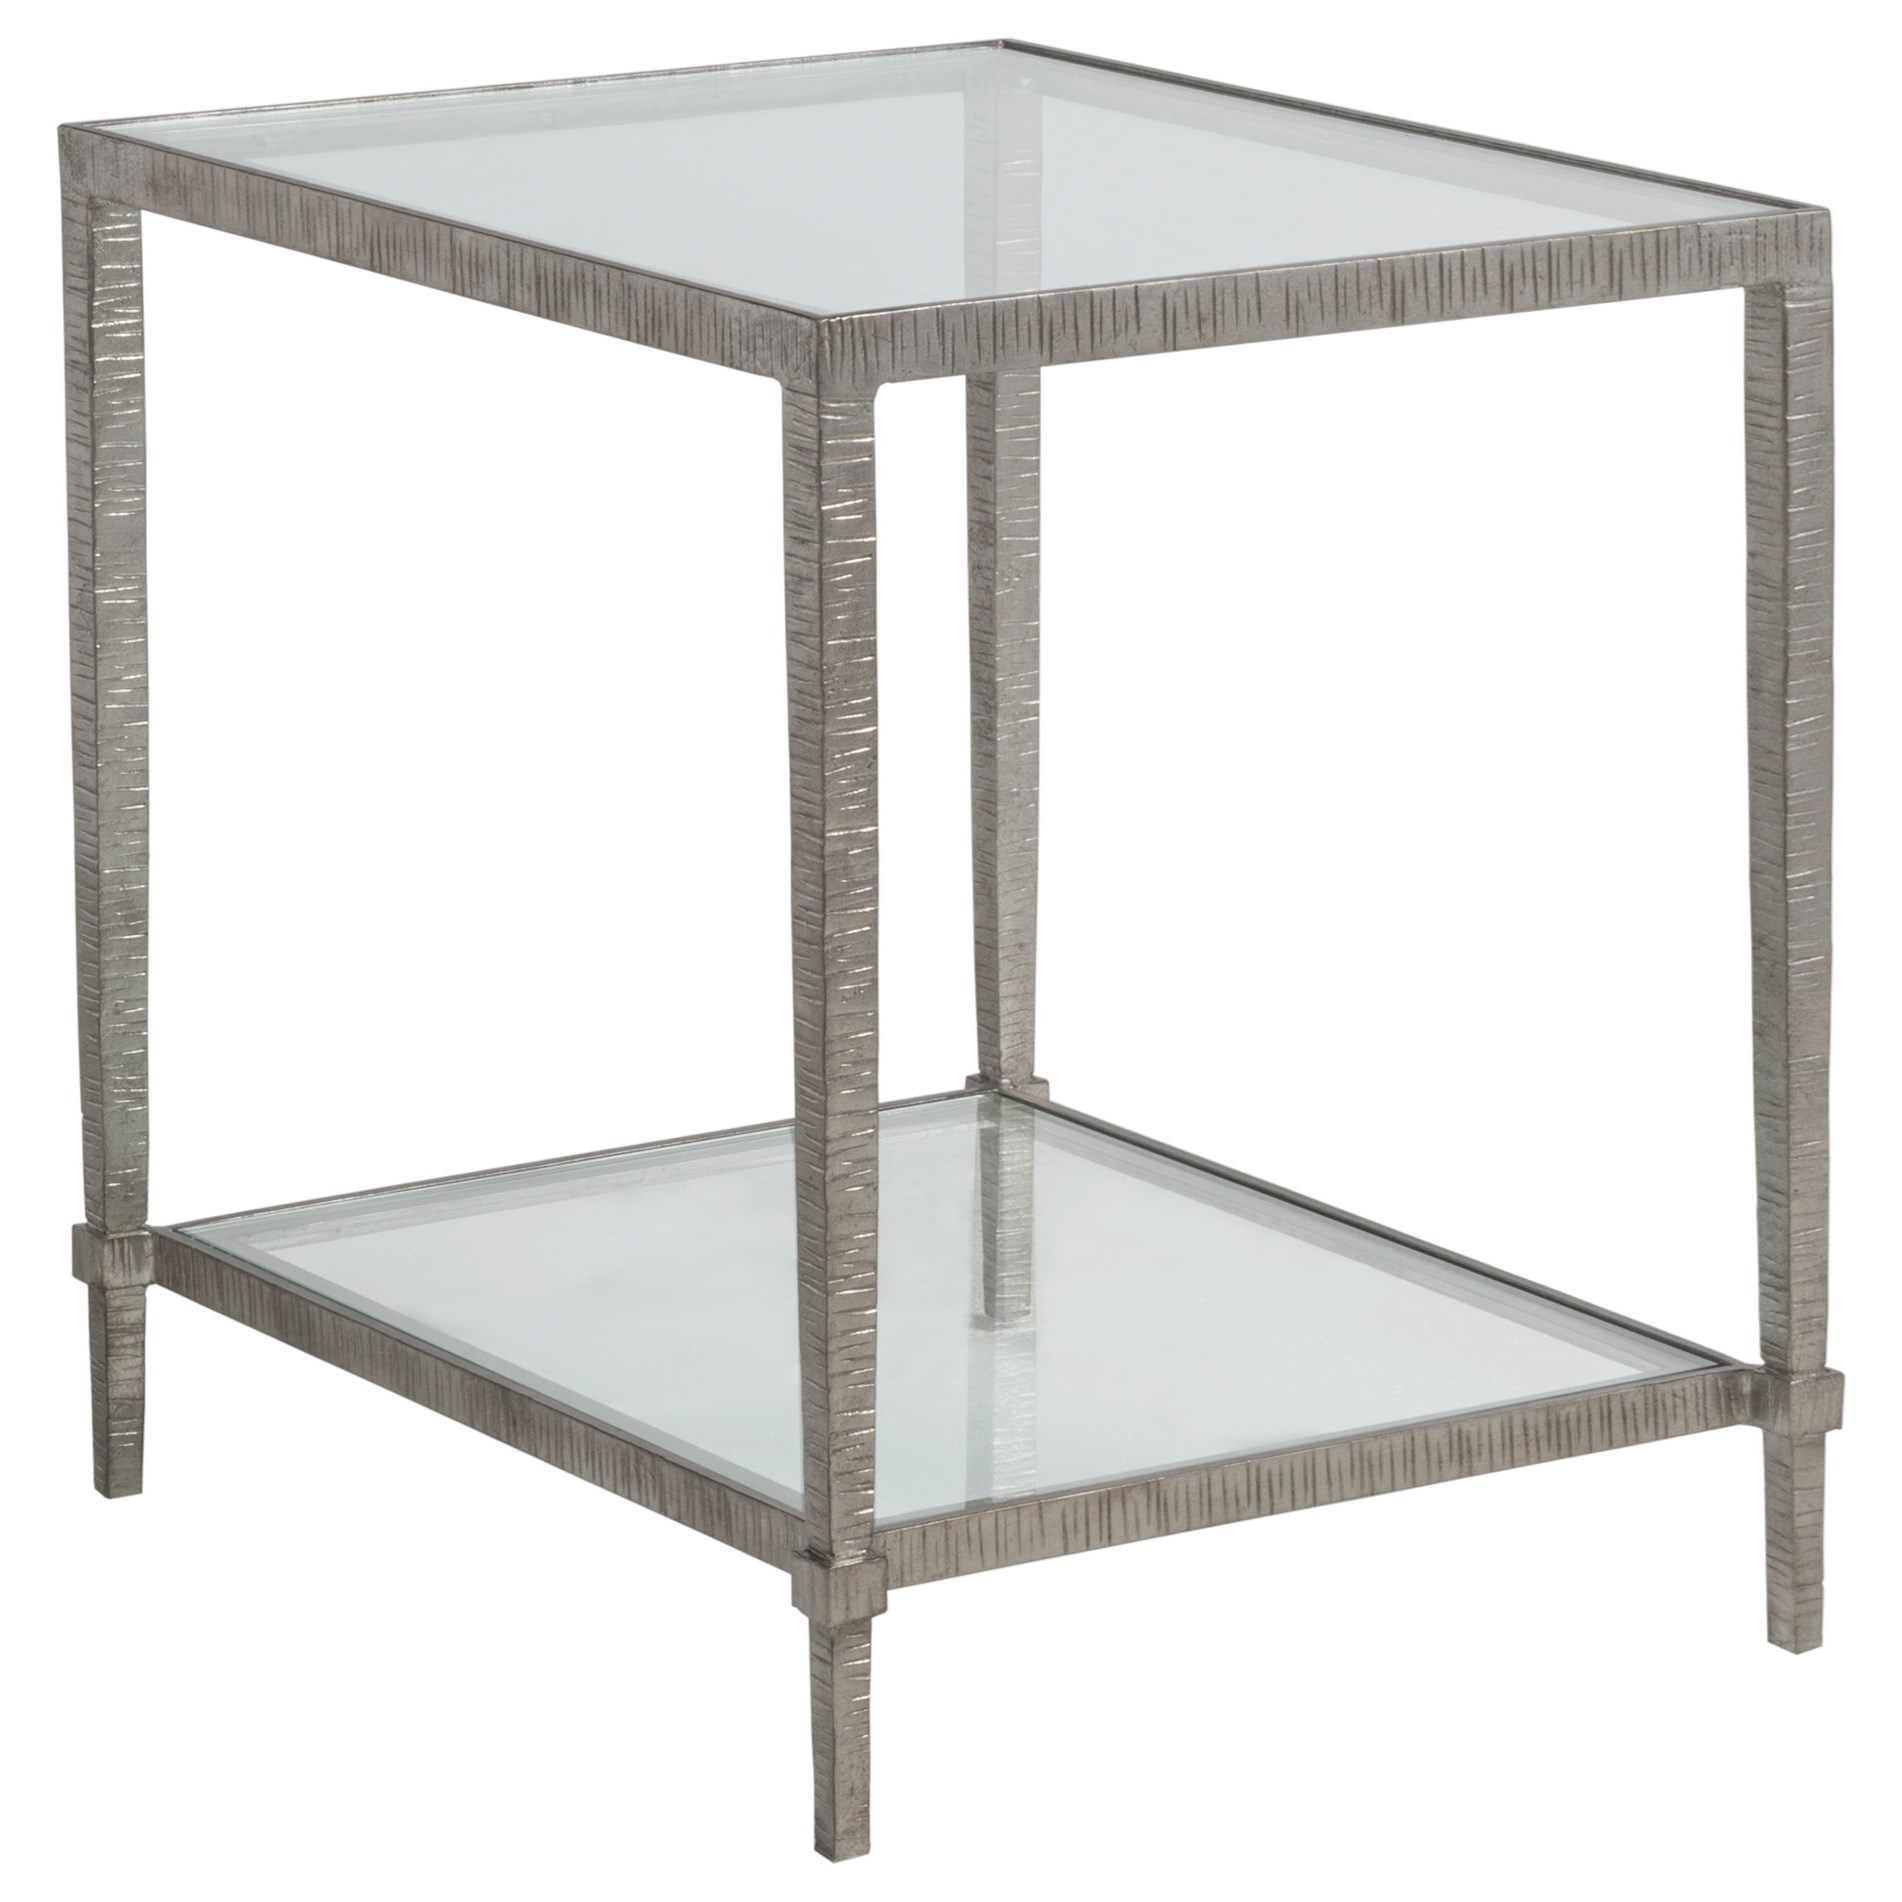 Metal Designs Claret Rectangular End Table by Artistica at Alison Craig Home Furnishings